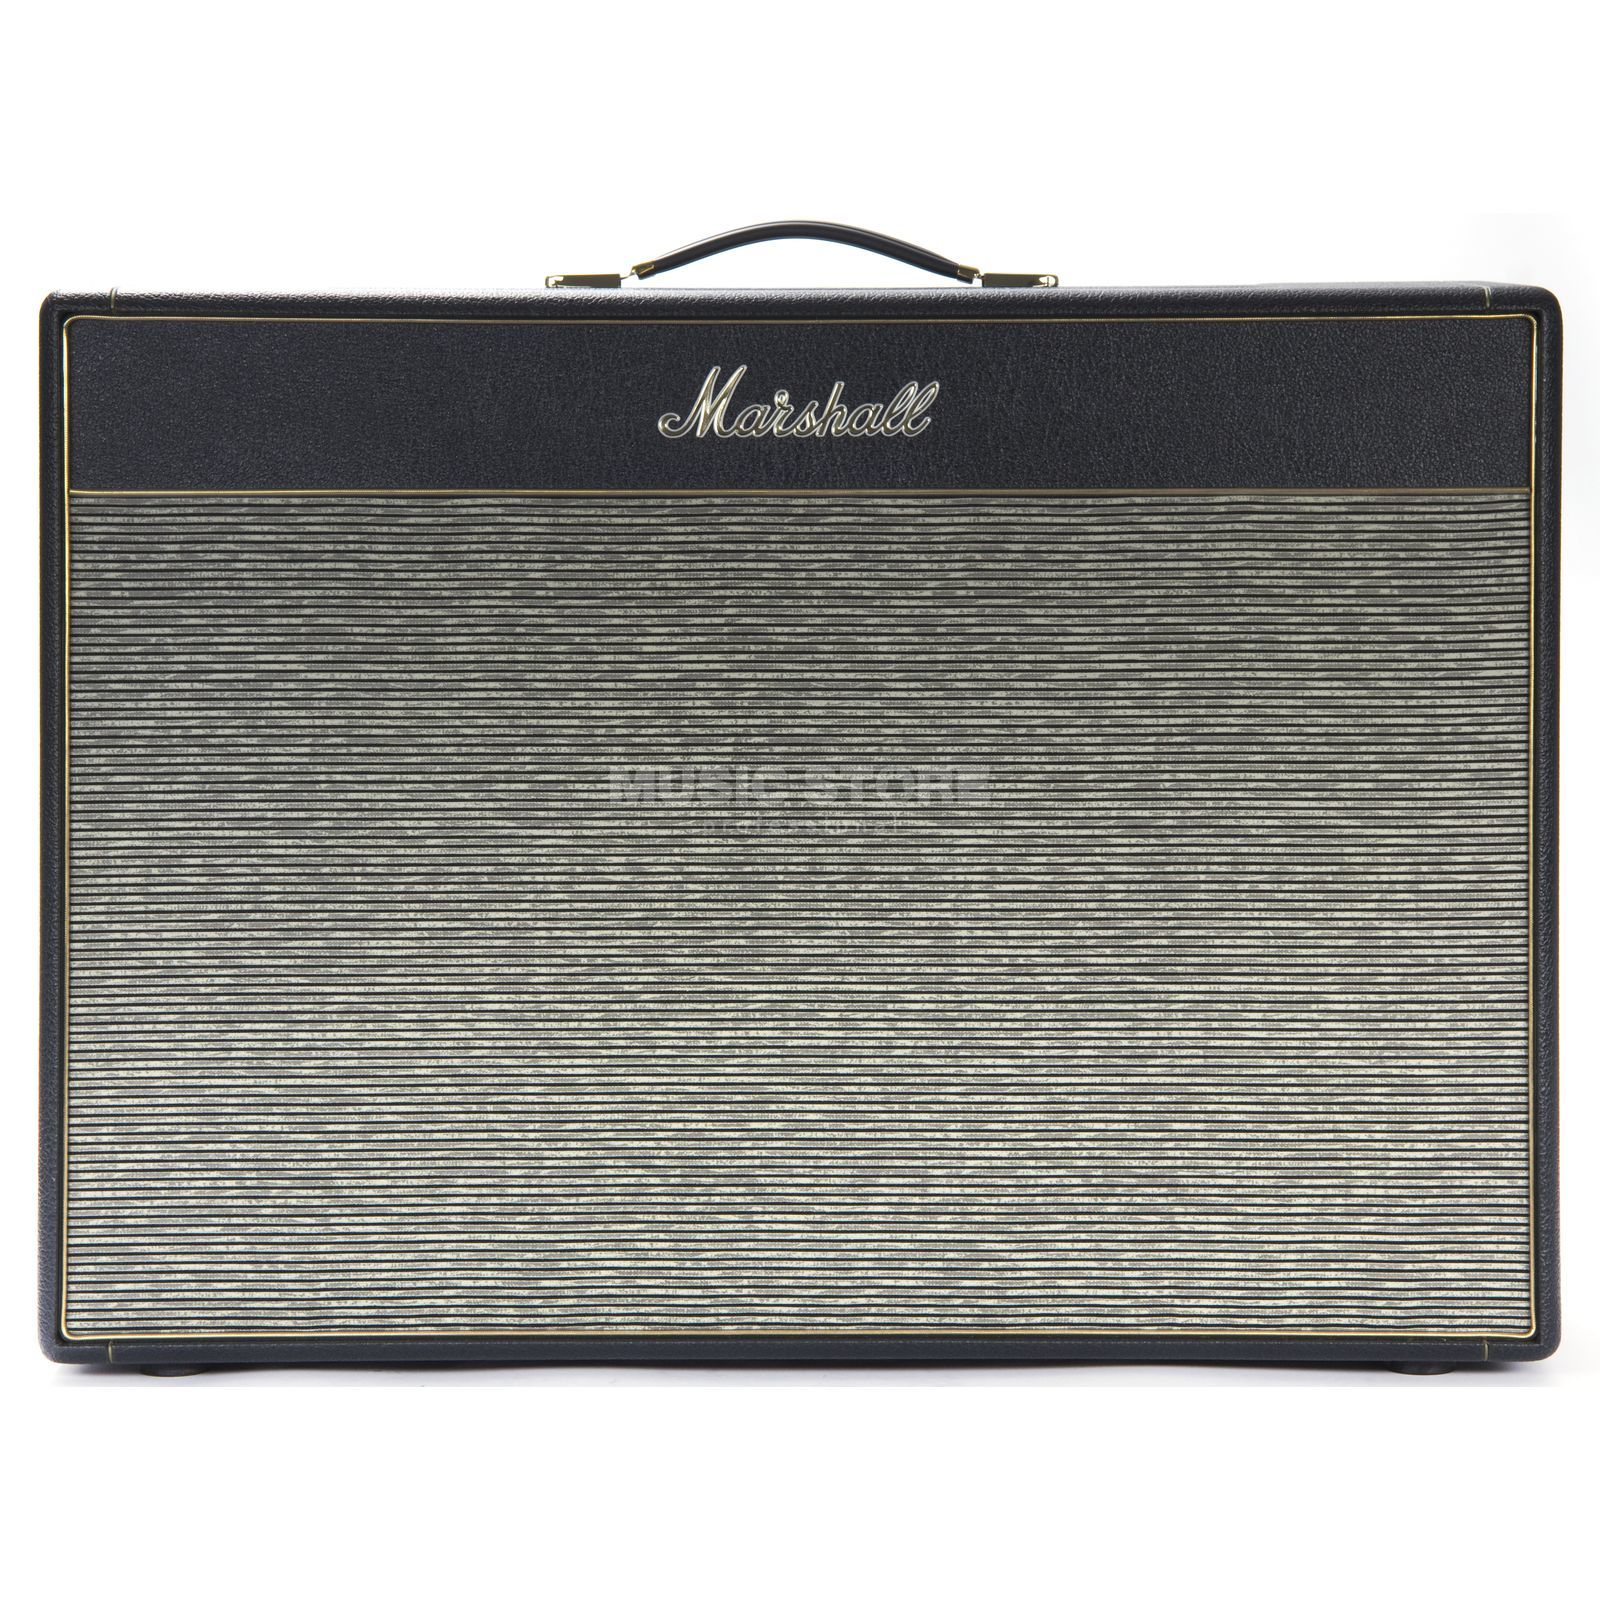 Marshall Limited Edition 1962 Bluesbreaker Handwired Zdjęcie produktu